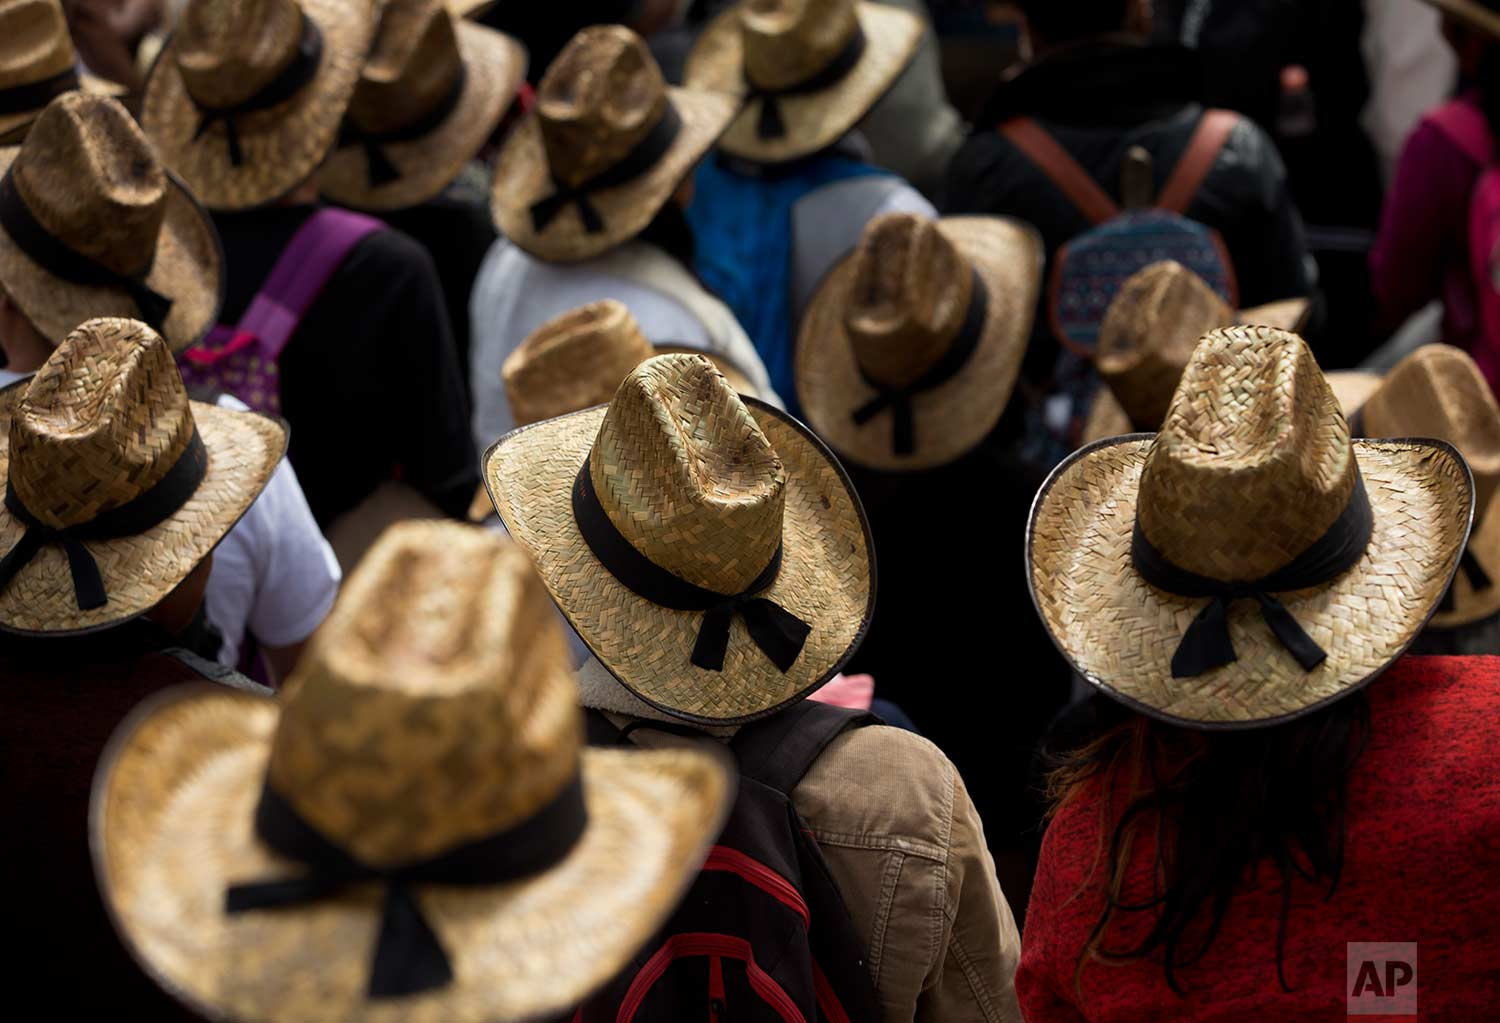 Farmers wearing straw hats take part in a march protesting the North American Free Trade Agreement in Mexico City, Wednesday, July 26, 2017. (AP Photo/Rebecca Blackwell)